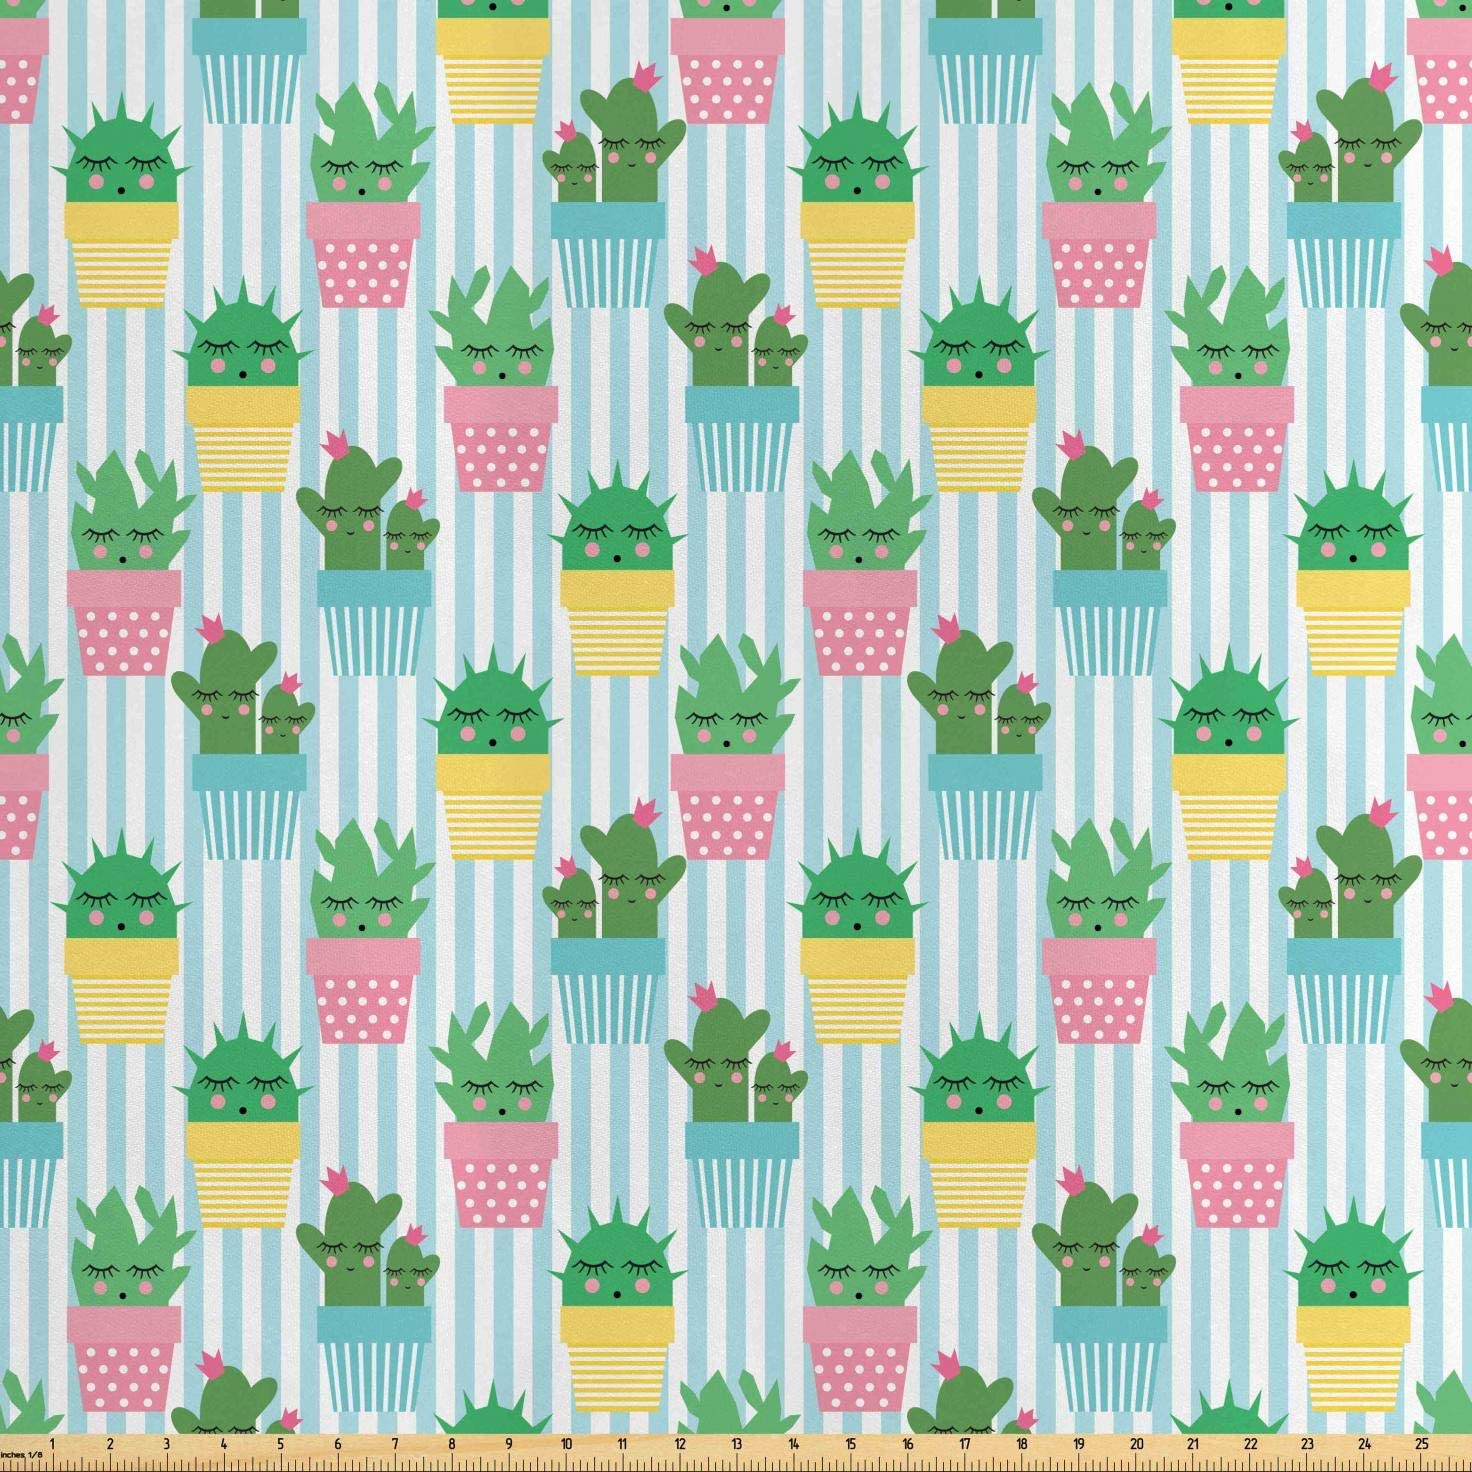 Lunarable Cactus Fabric by The Yard, Tropical Baby Plants with Faces in Striped and Polka Dots Pots Gardening Theme, Decorative Satin Fabric for Home Textiles and Crafts, 10 Yards, Teal Green